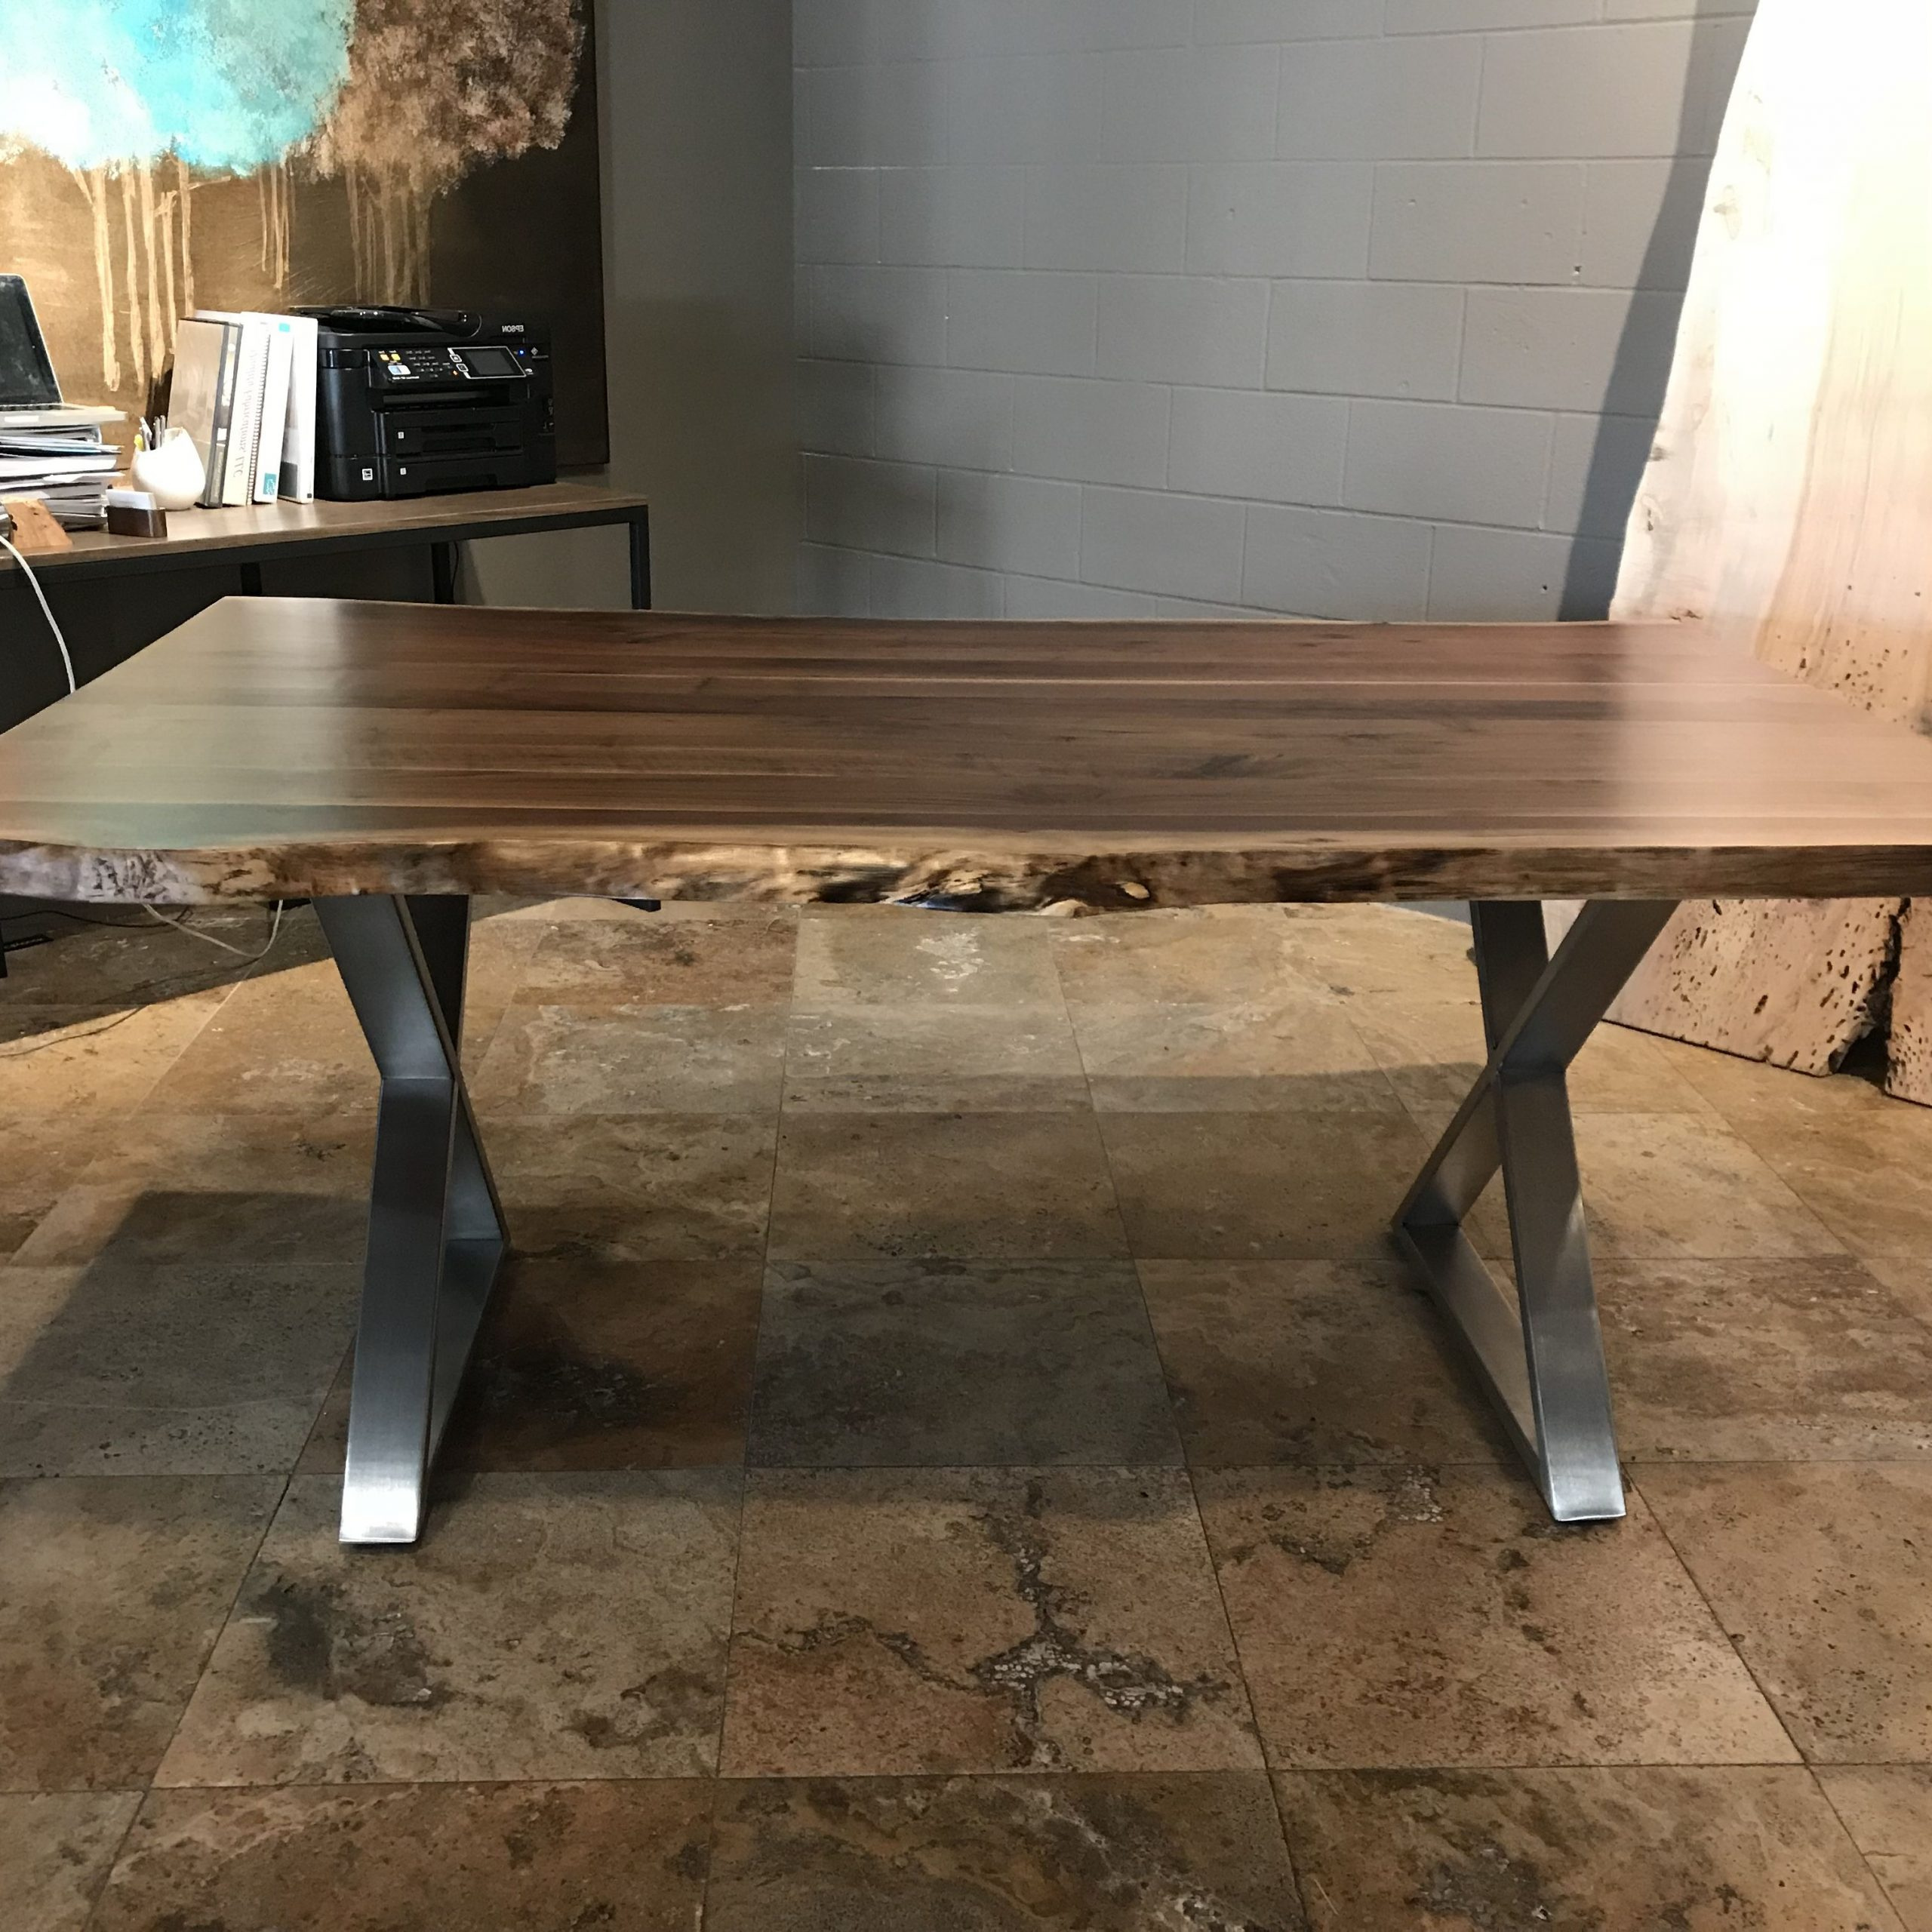 Buy A Custom Live Edge Dining Table, Made To Order From With Regard To Popular Walnut Finish Live Edge Wood Contemporary Dining Tables (View 4 of 25)